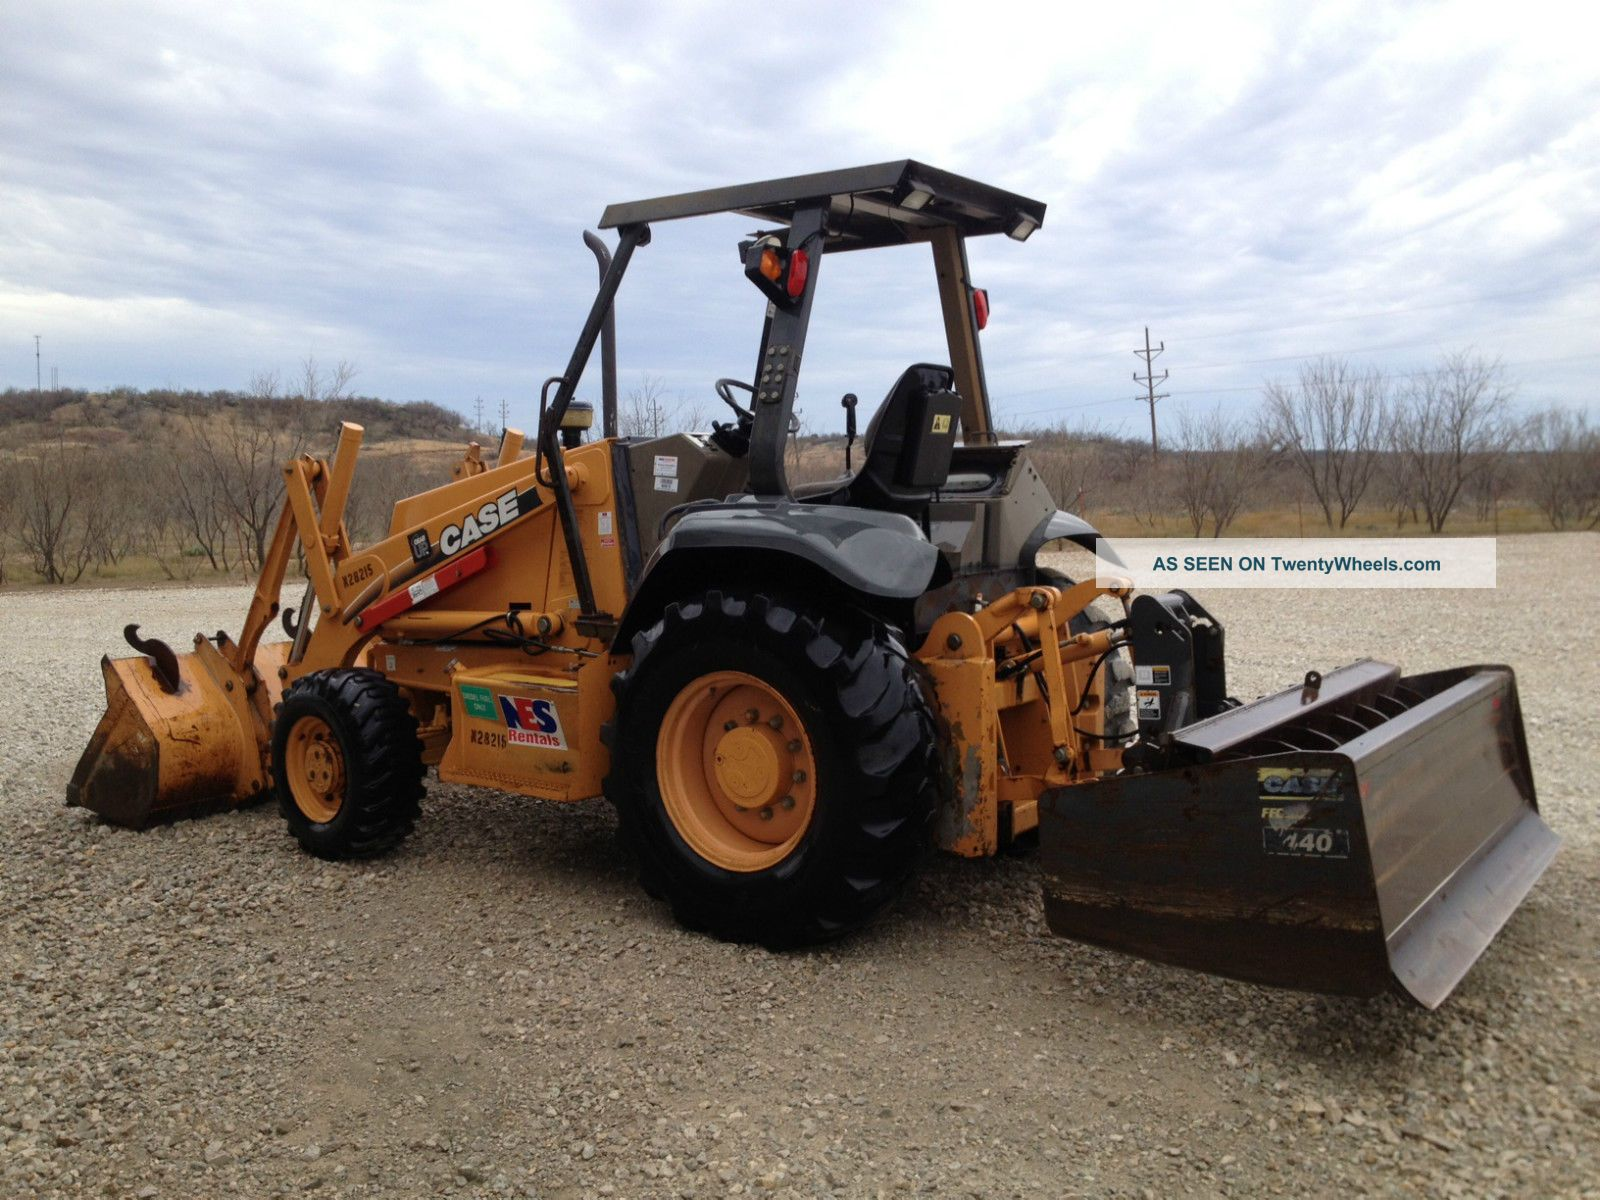 2005 Case 570m Xt Skip Loader - Landscape Tractor - 4x4 - Hydraulic ...